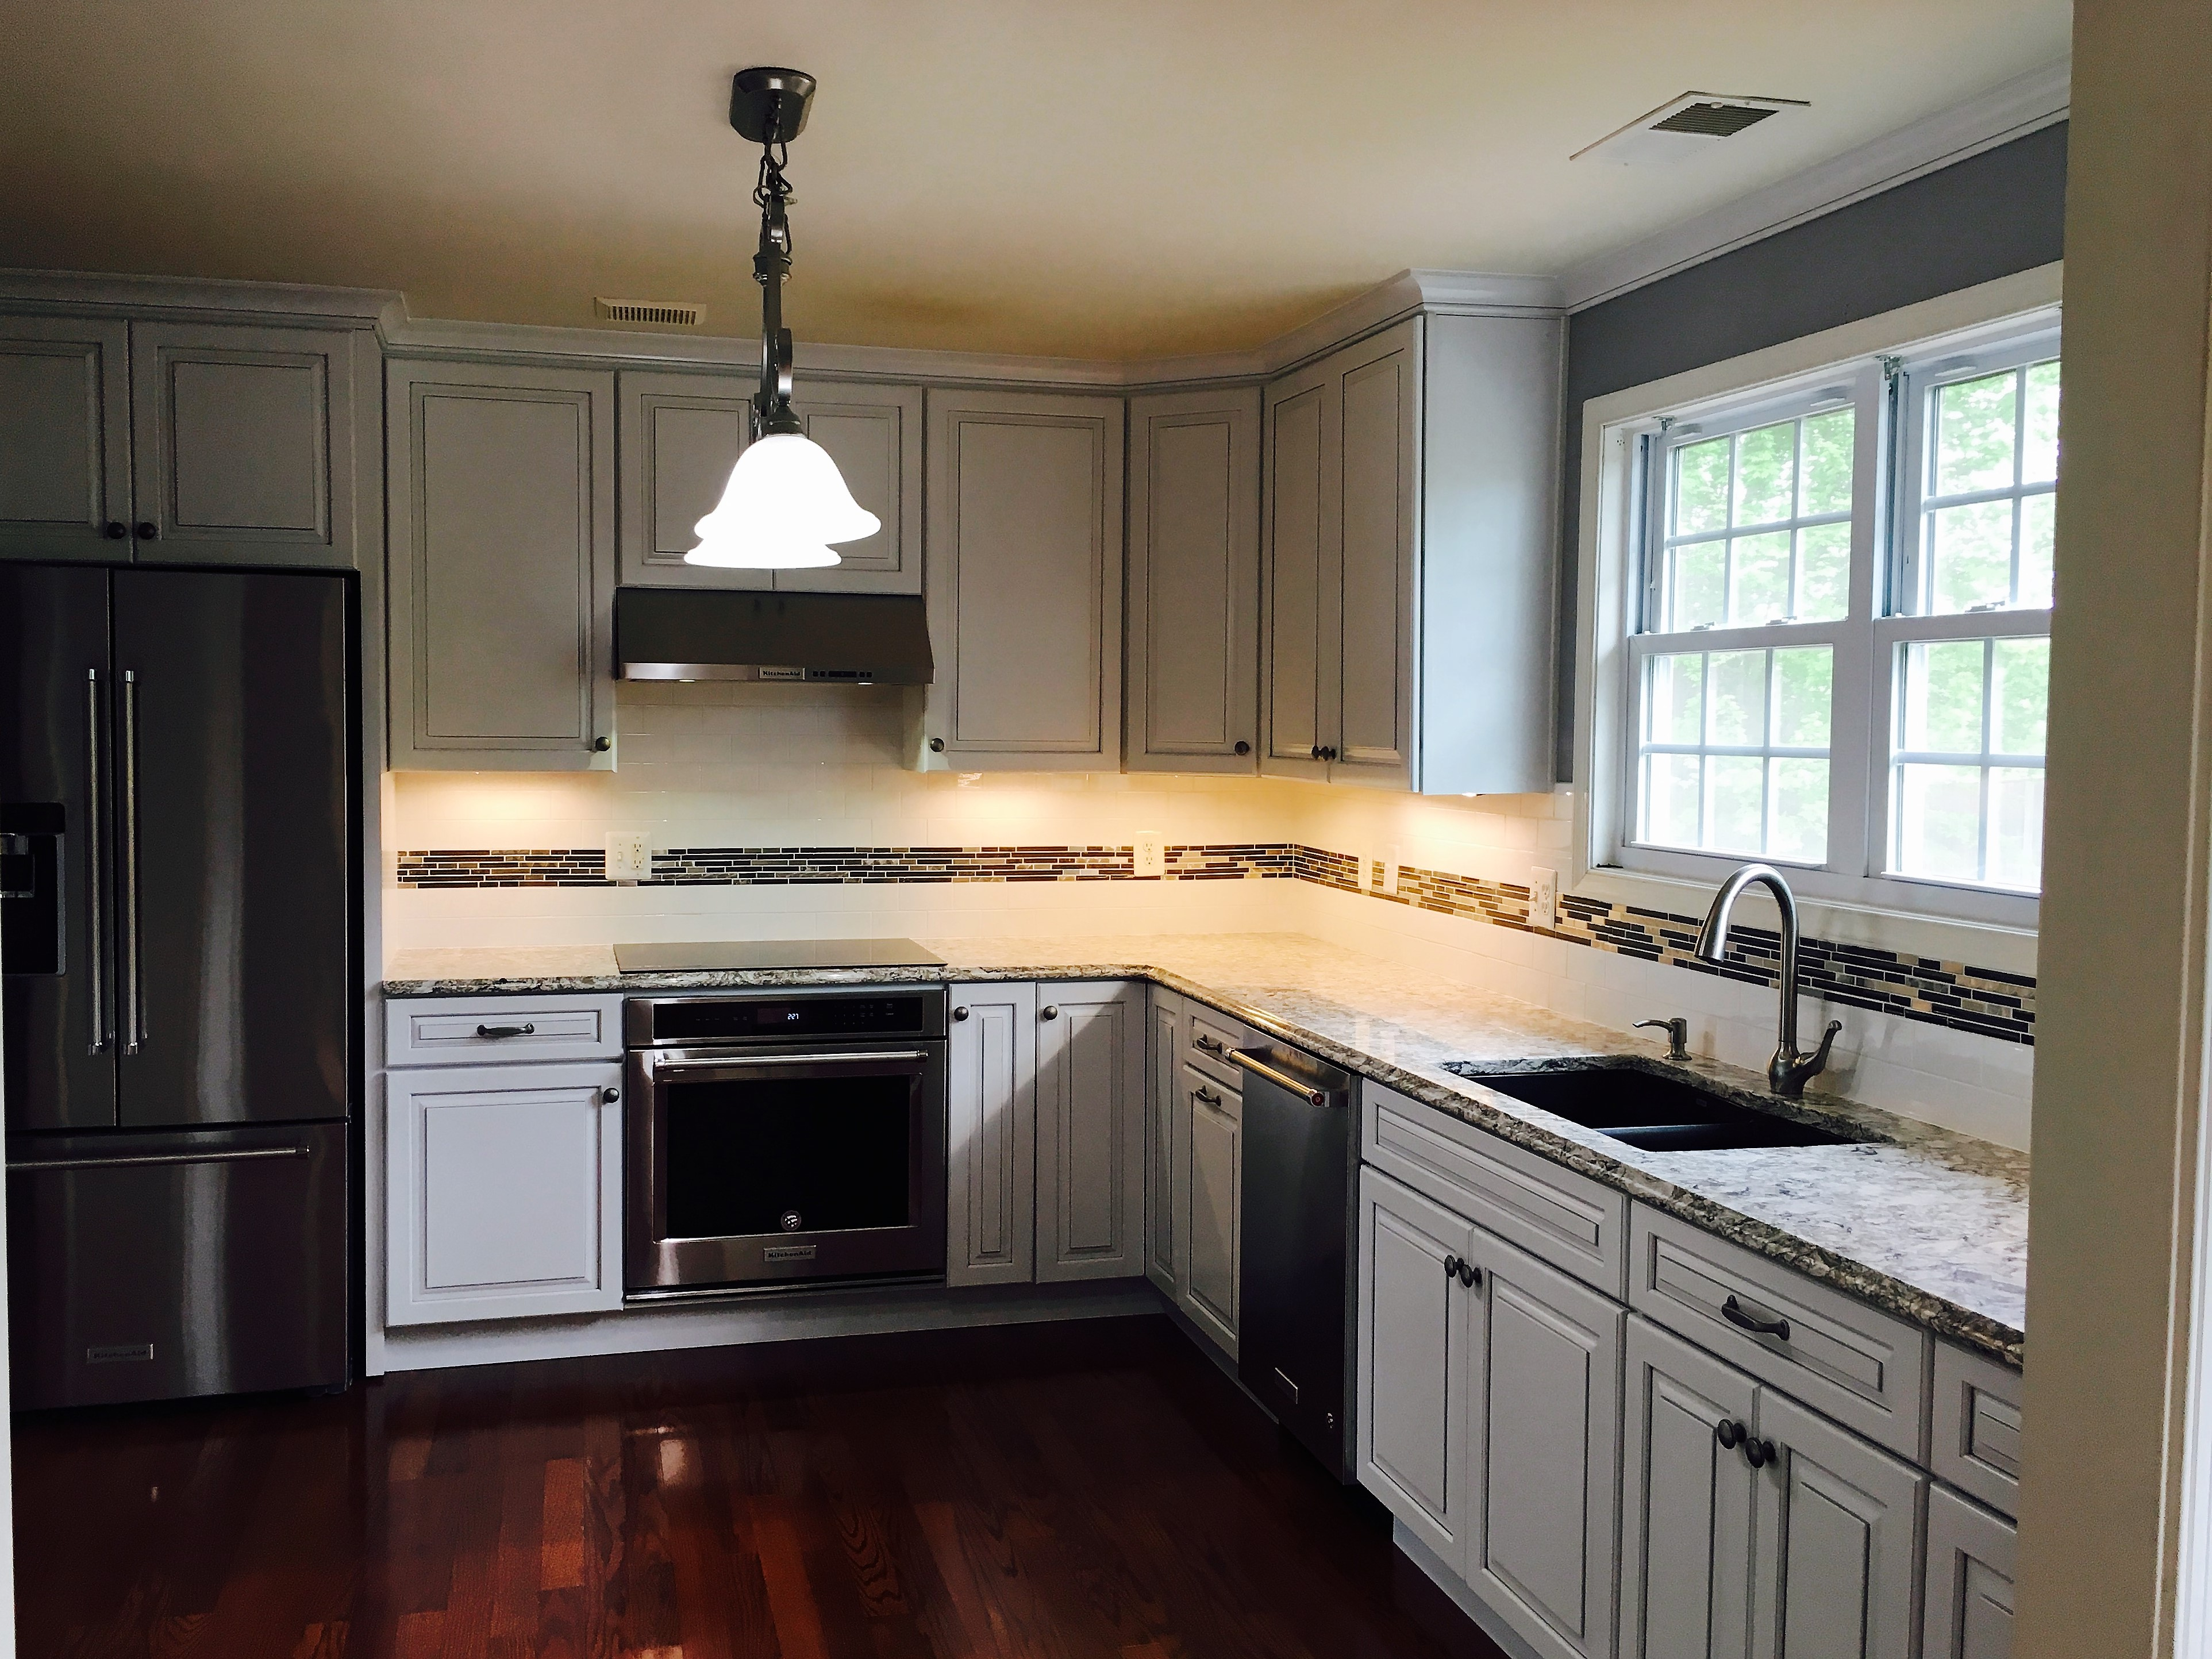 Hagerstown Kitchen Remodeling  The kitchen is an essential part of every  household  It s central to your home and an extremely important part of  your. Hagerstown Kitchen Contractors  Design   Remodeling